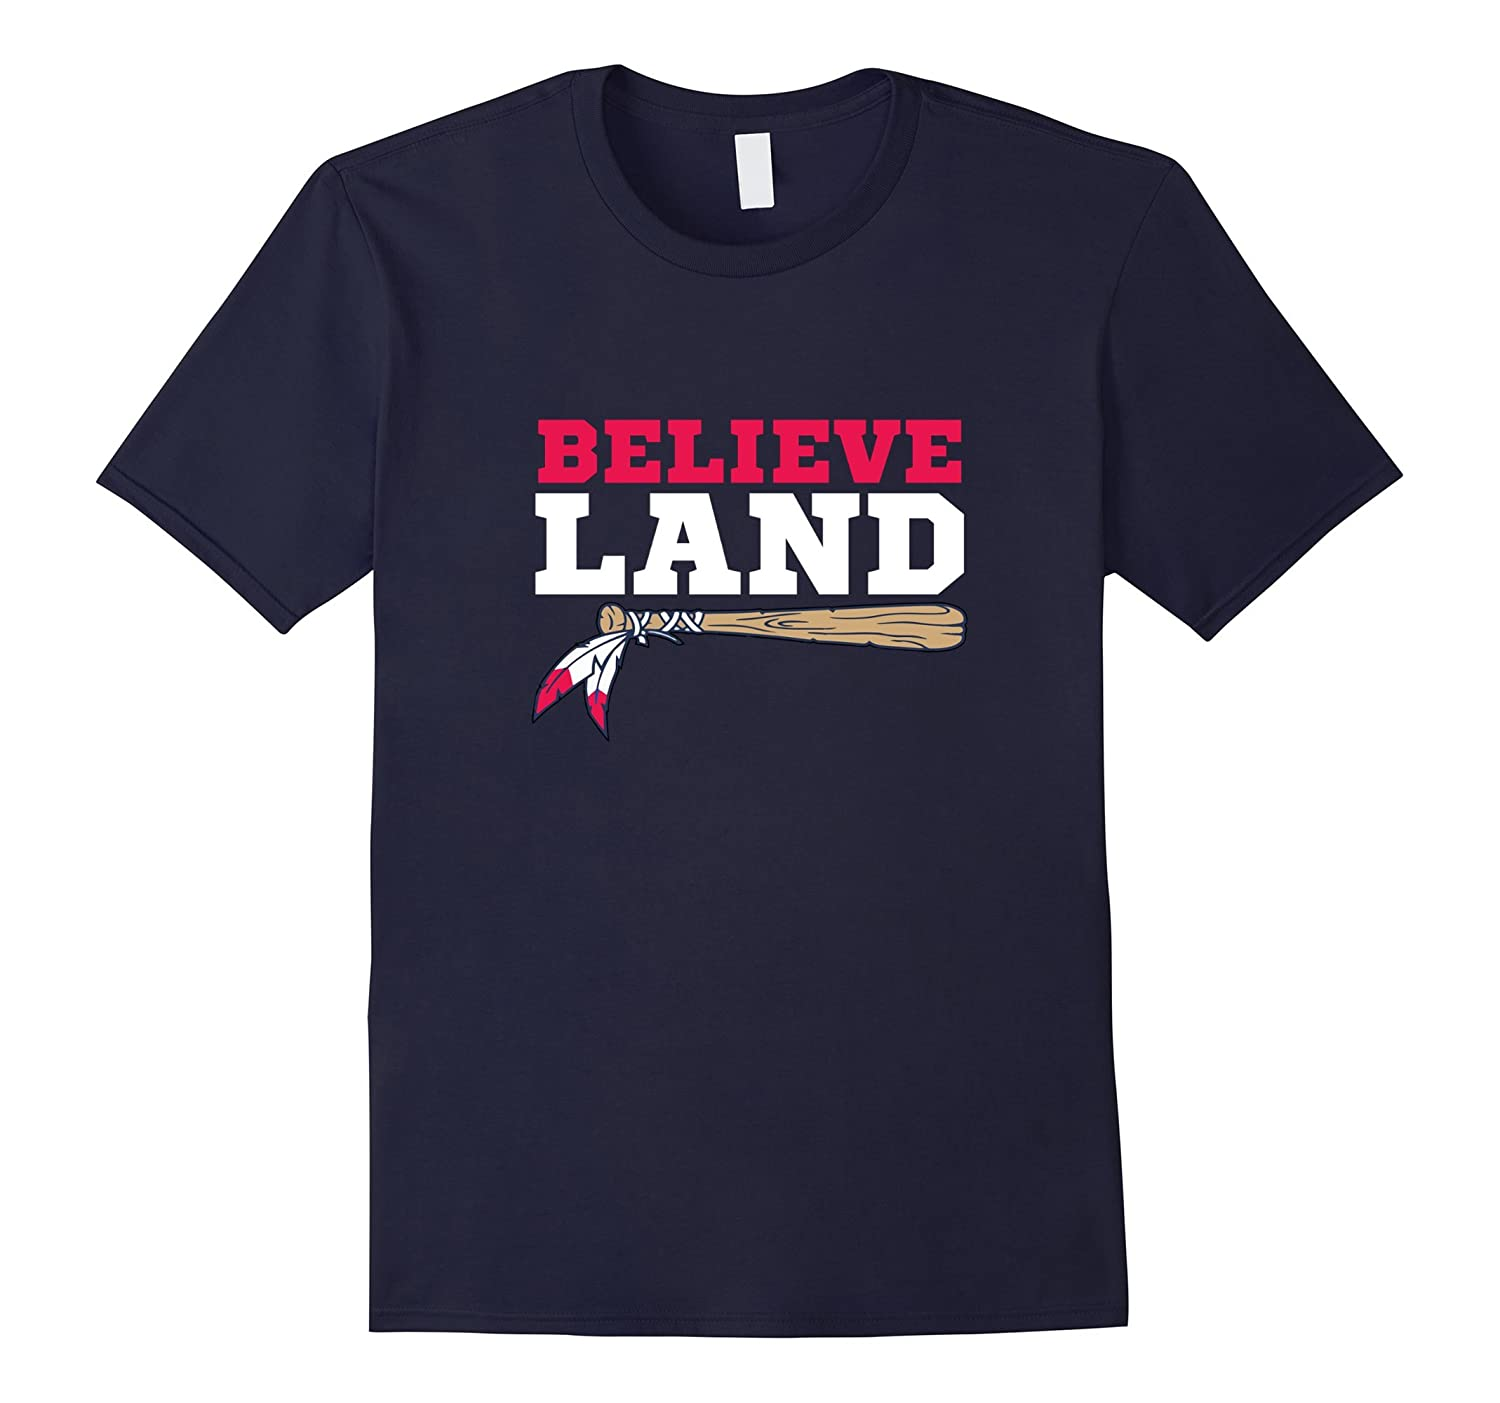 Believe Land Cleveland Baseball T-Shirt-BN